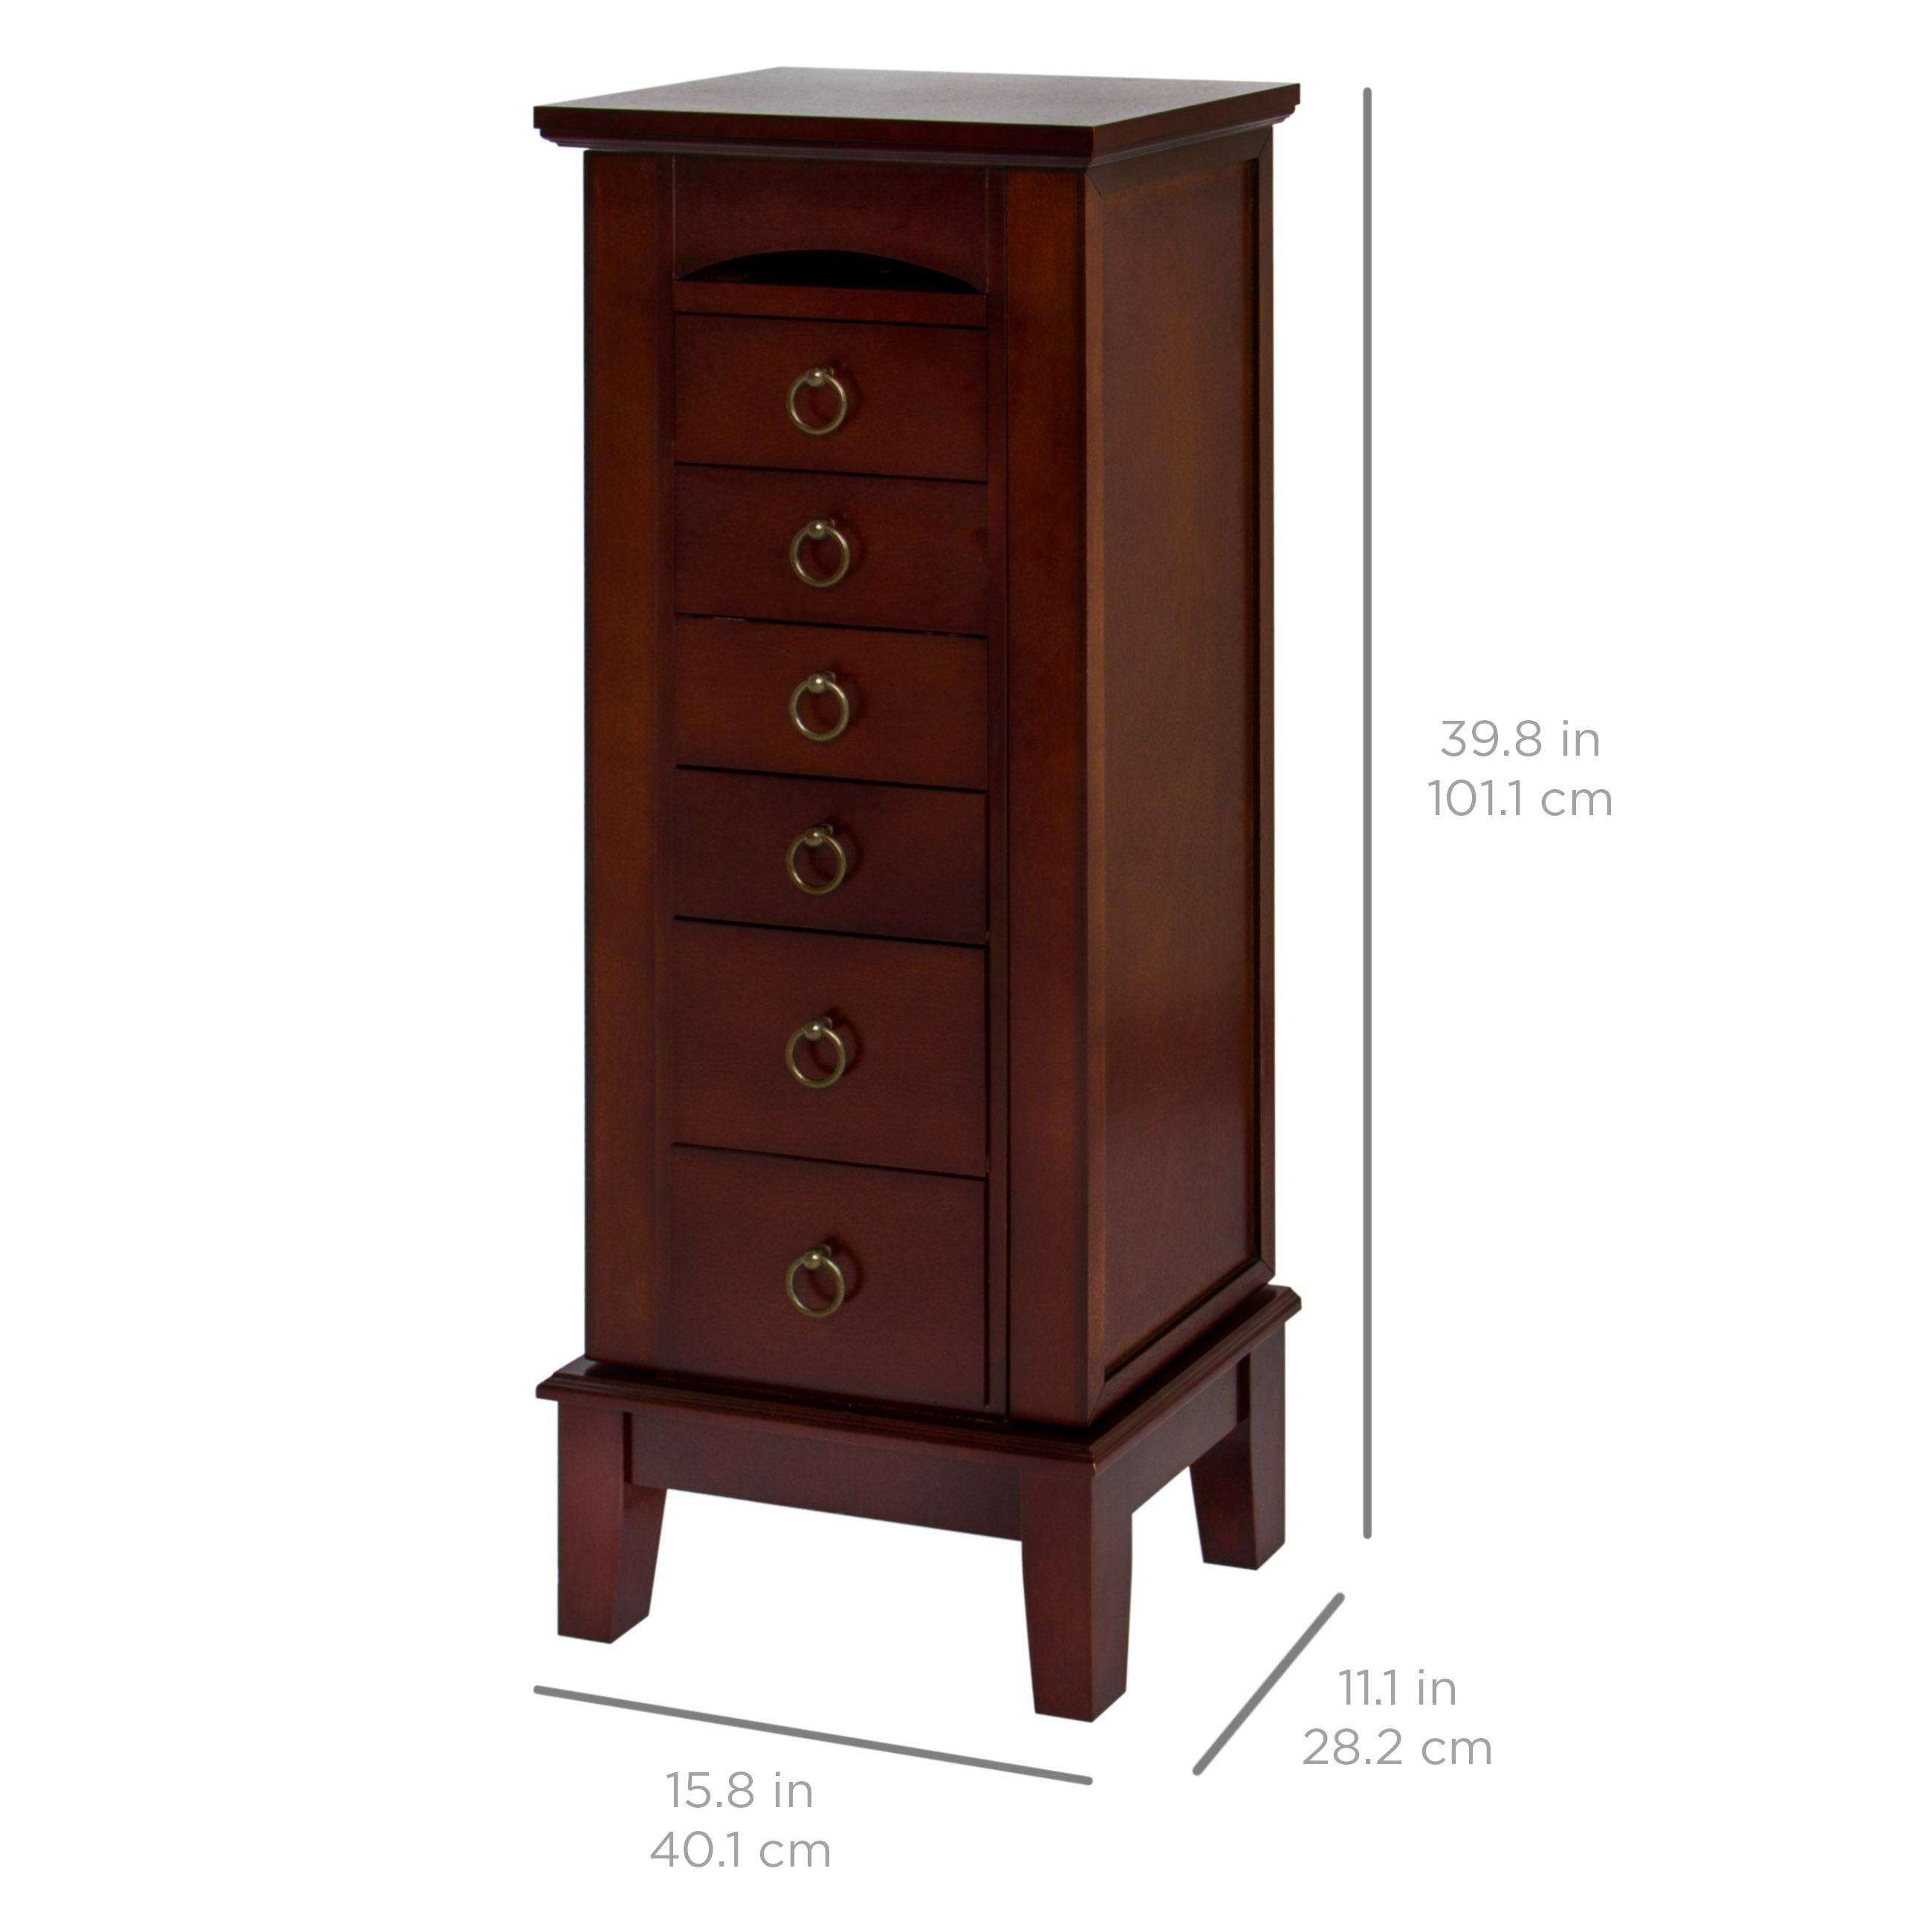 Best choice products wooden standing jewelry armoire